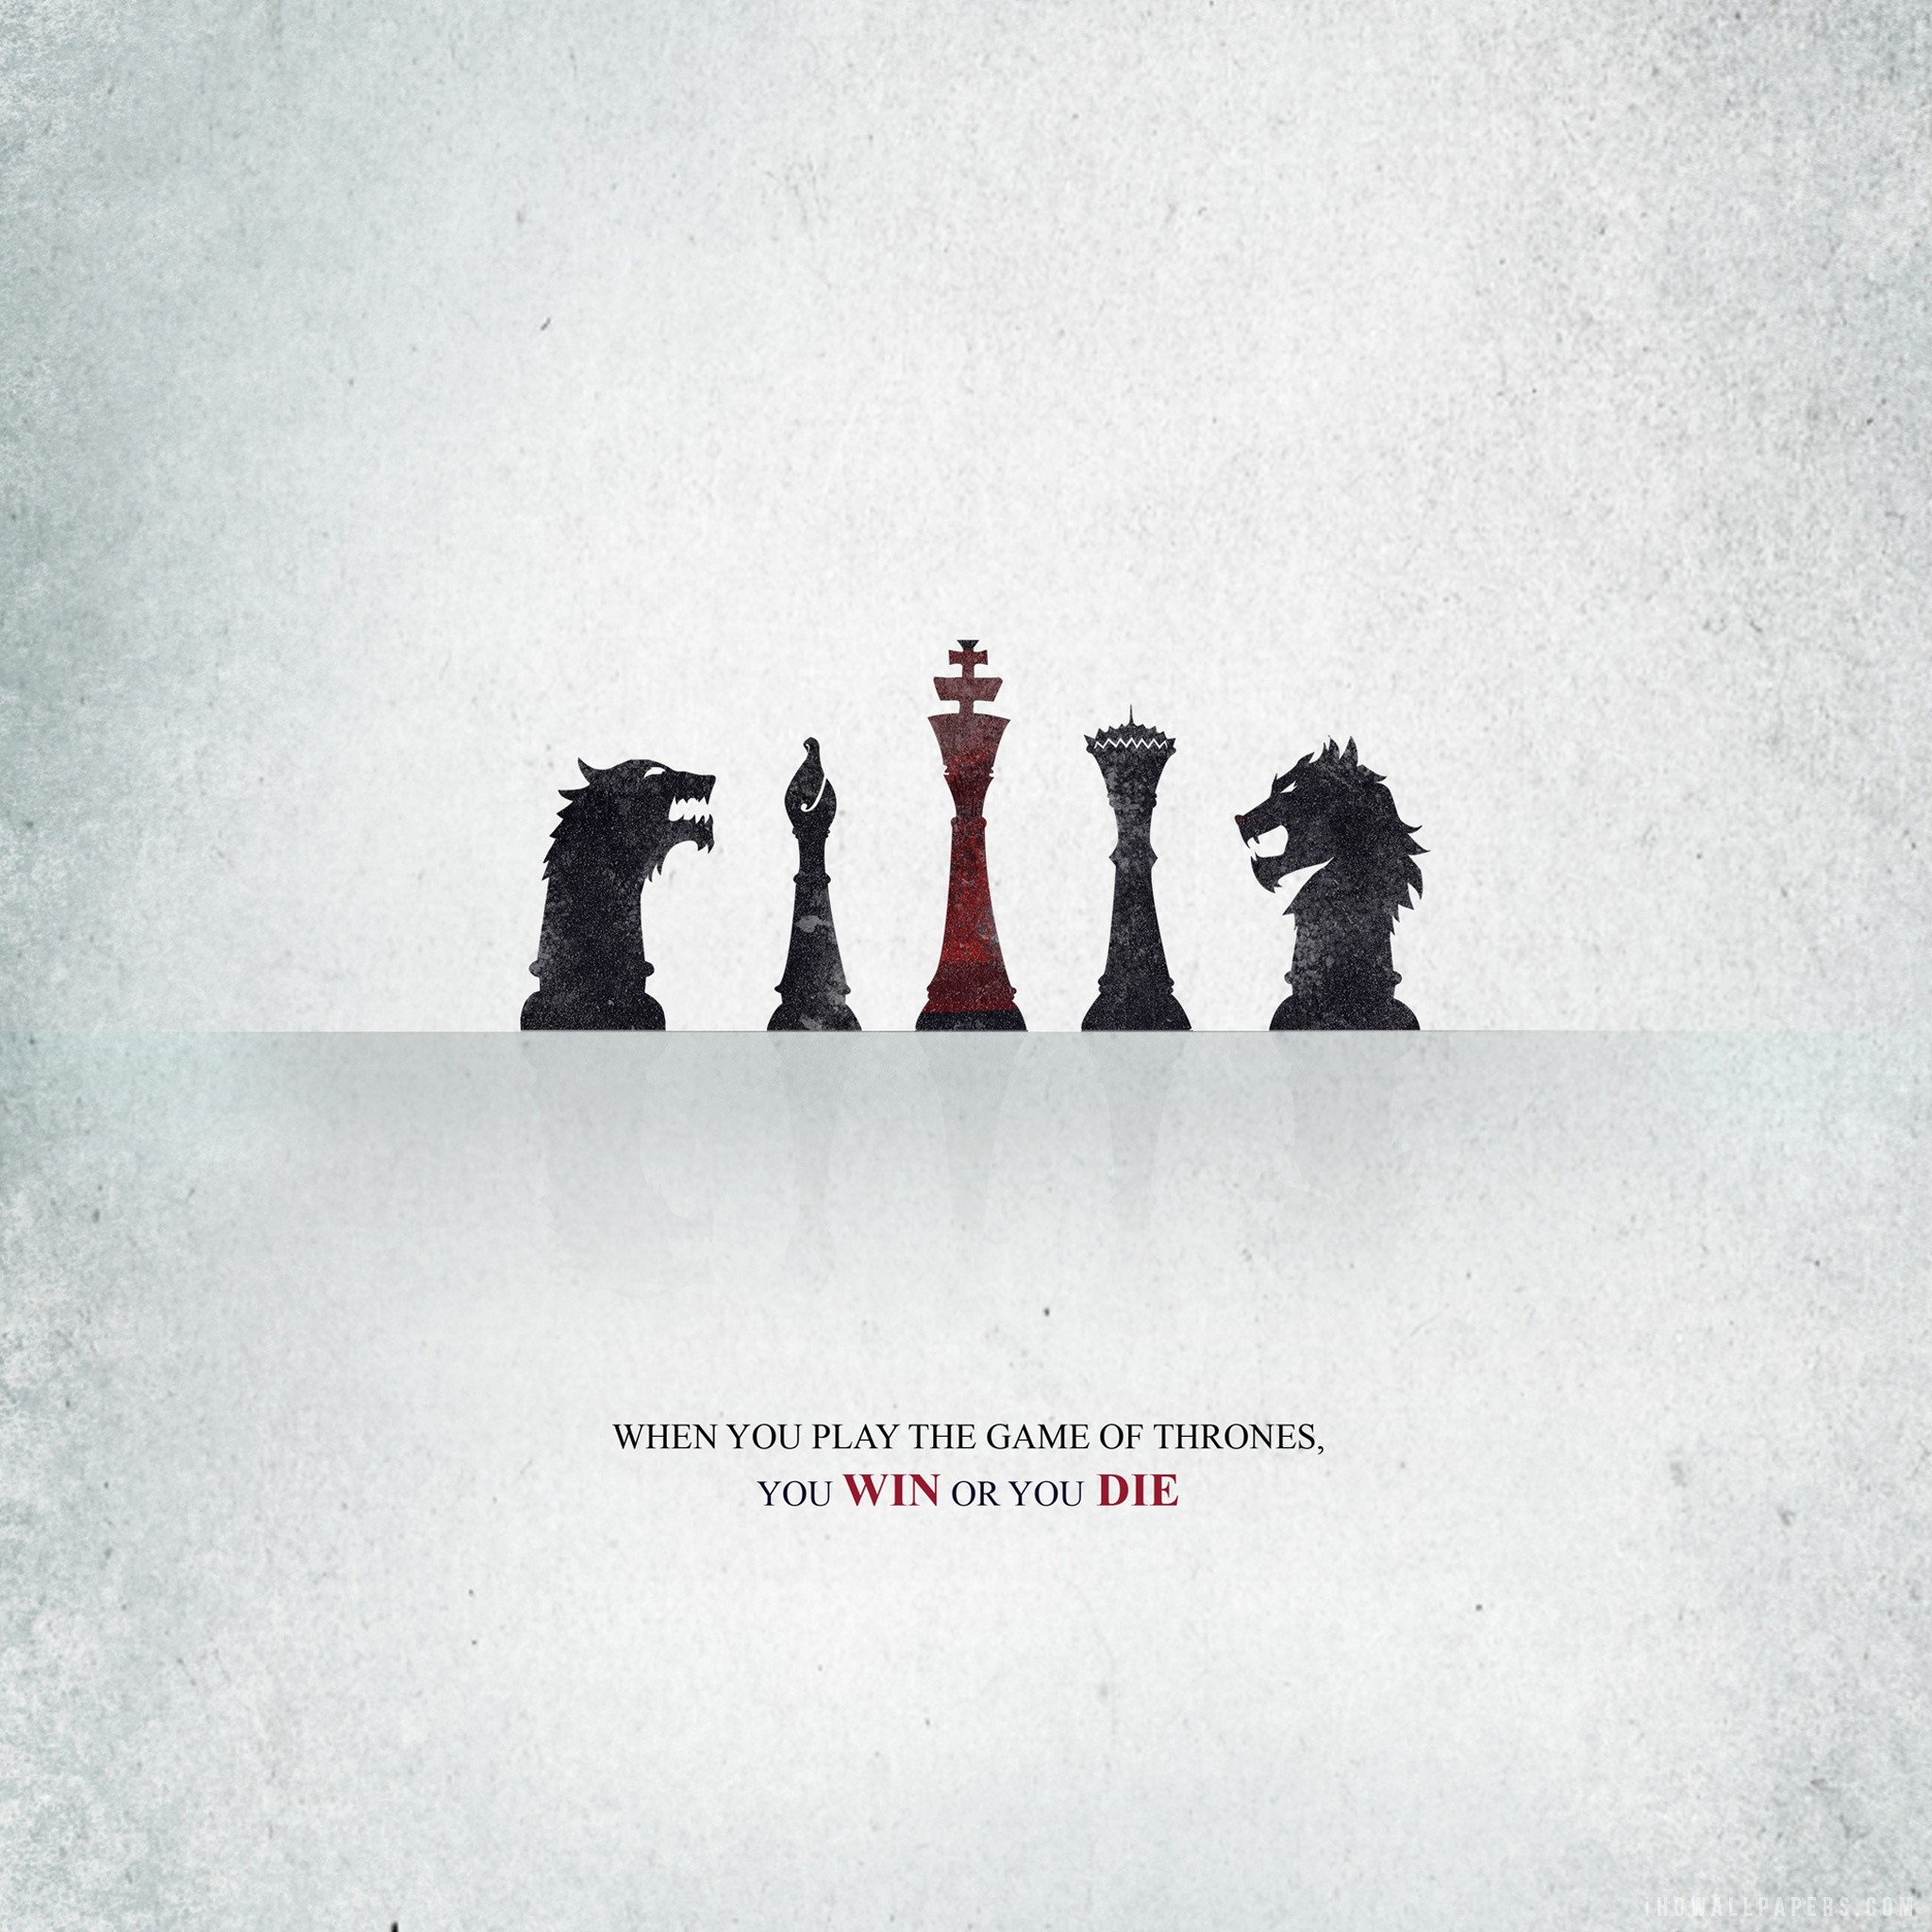 Game of Thrones Season 5 Chess Wallpaper